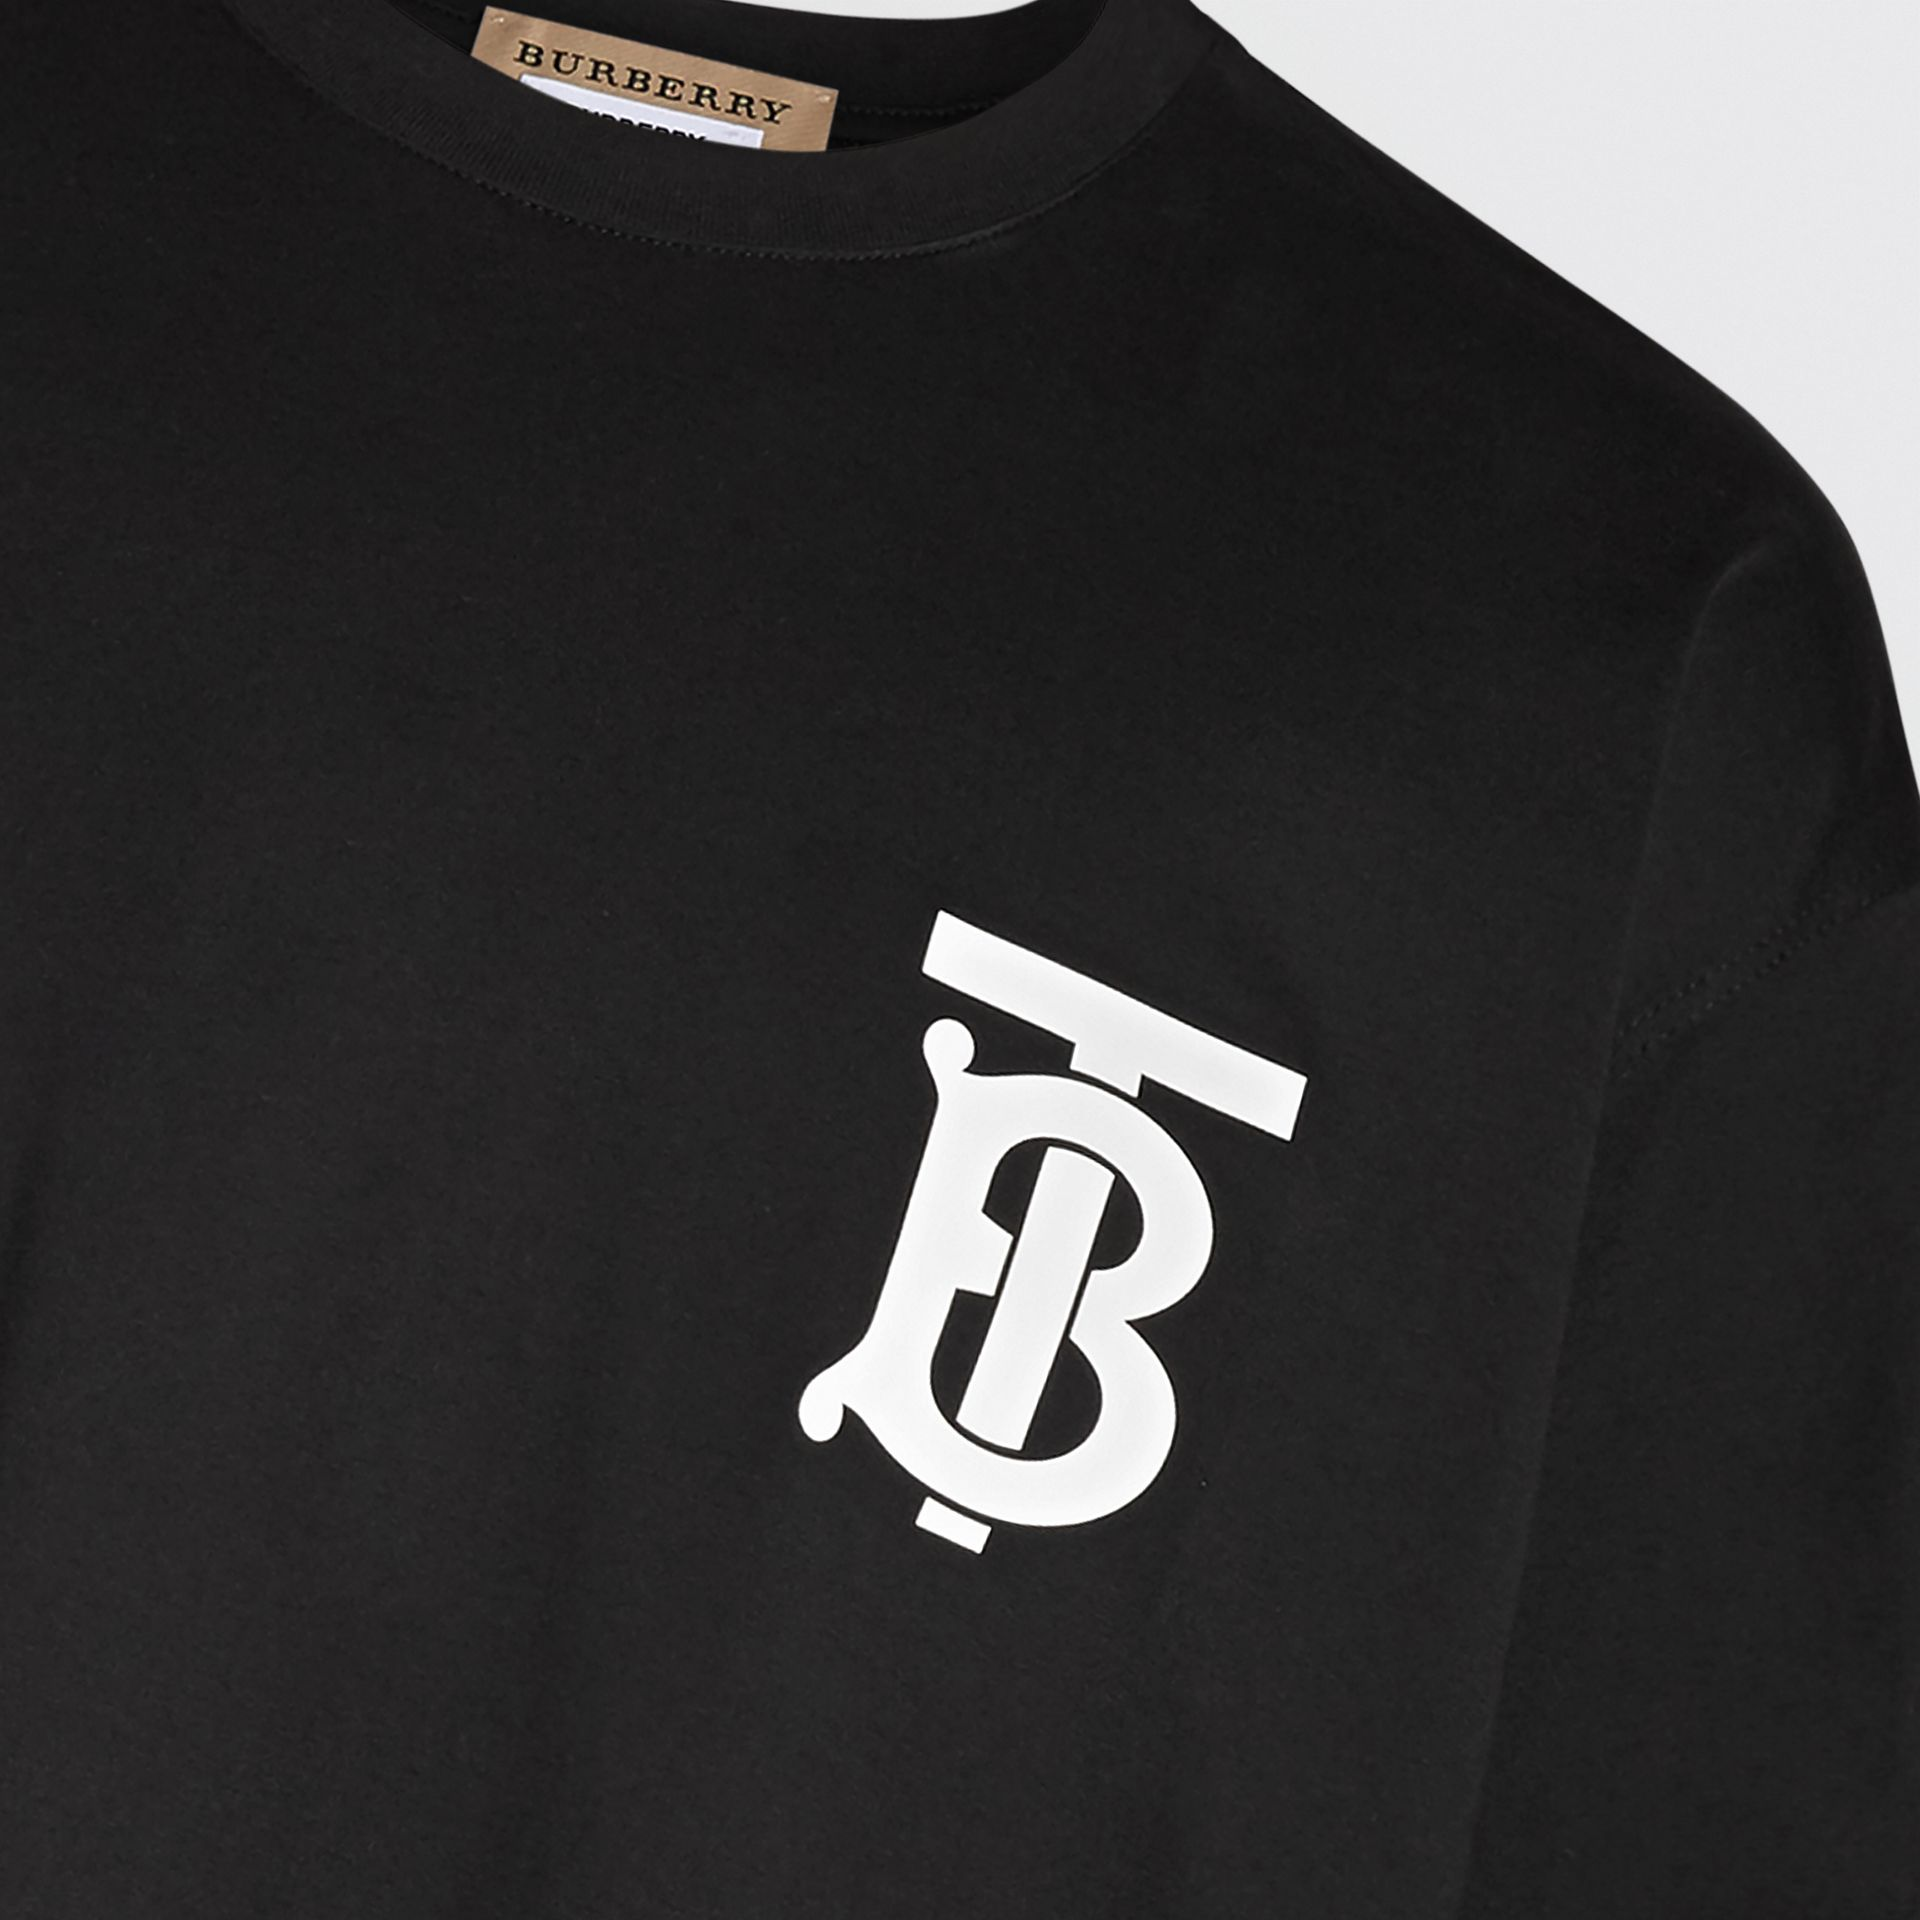 Monogram Motif T-shirt in Black - Men | Burberry - gallery image 1